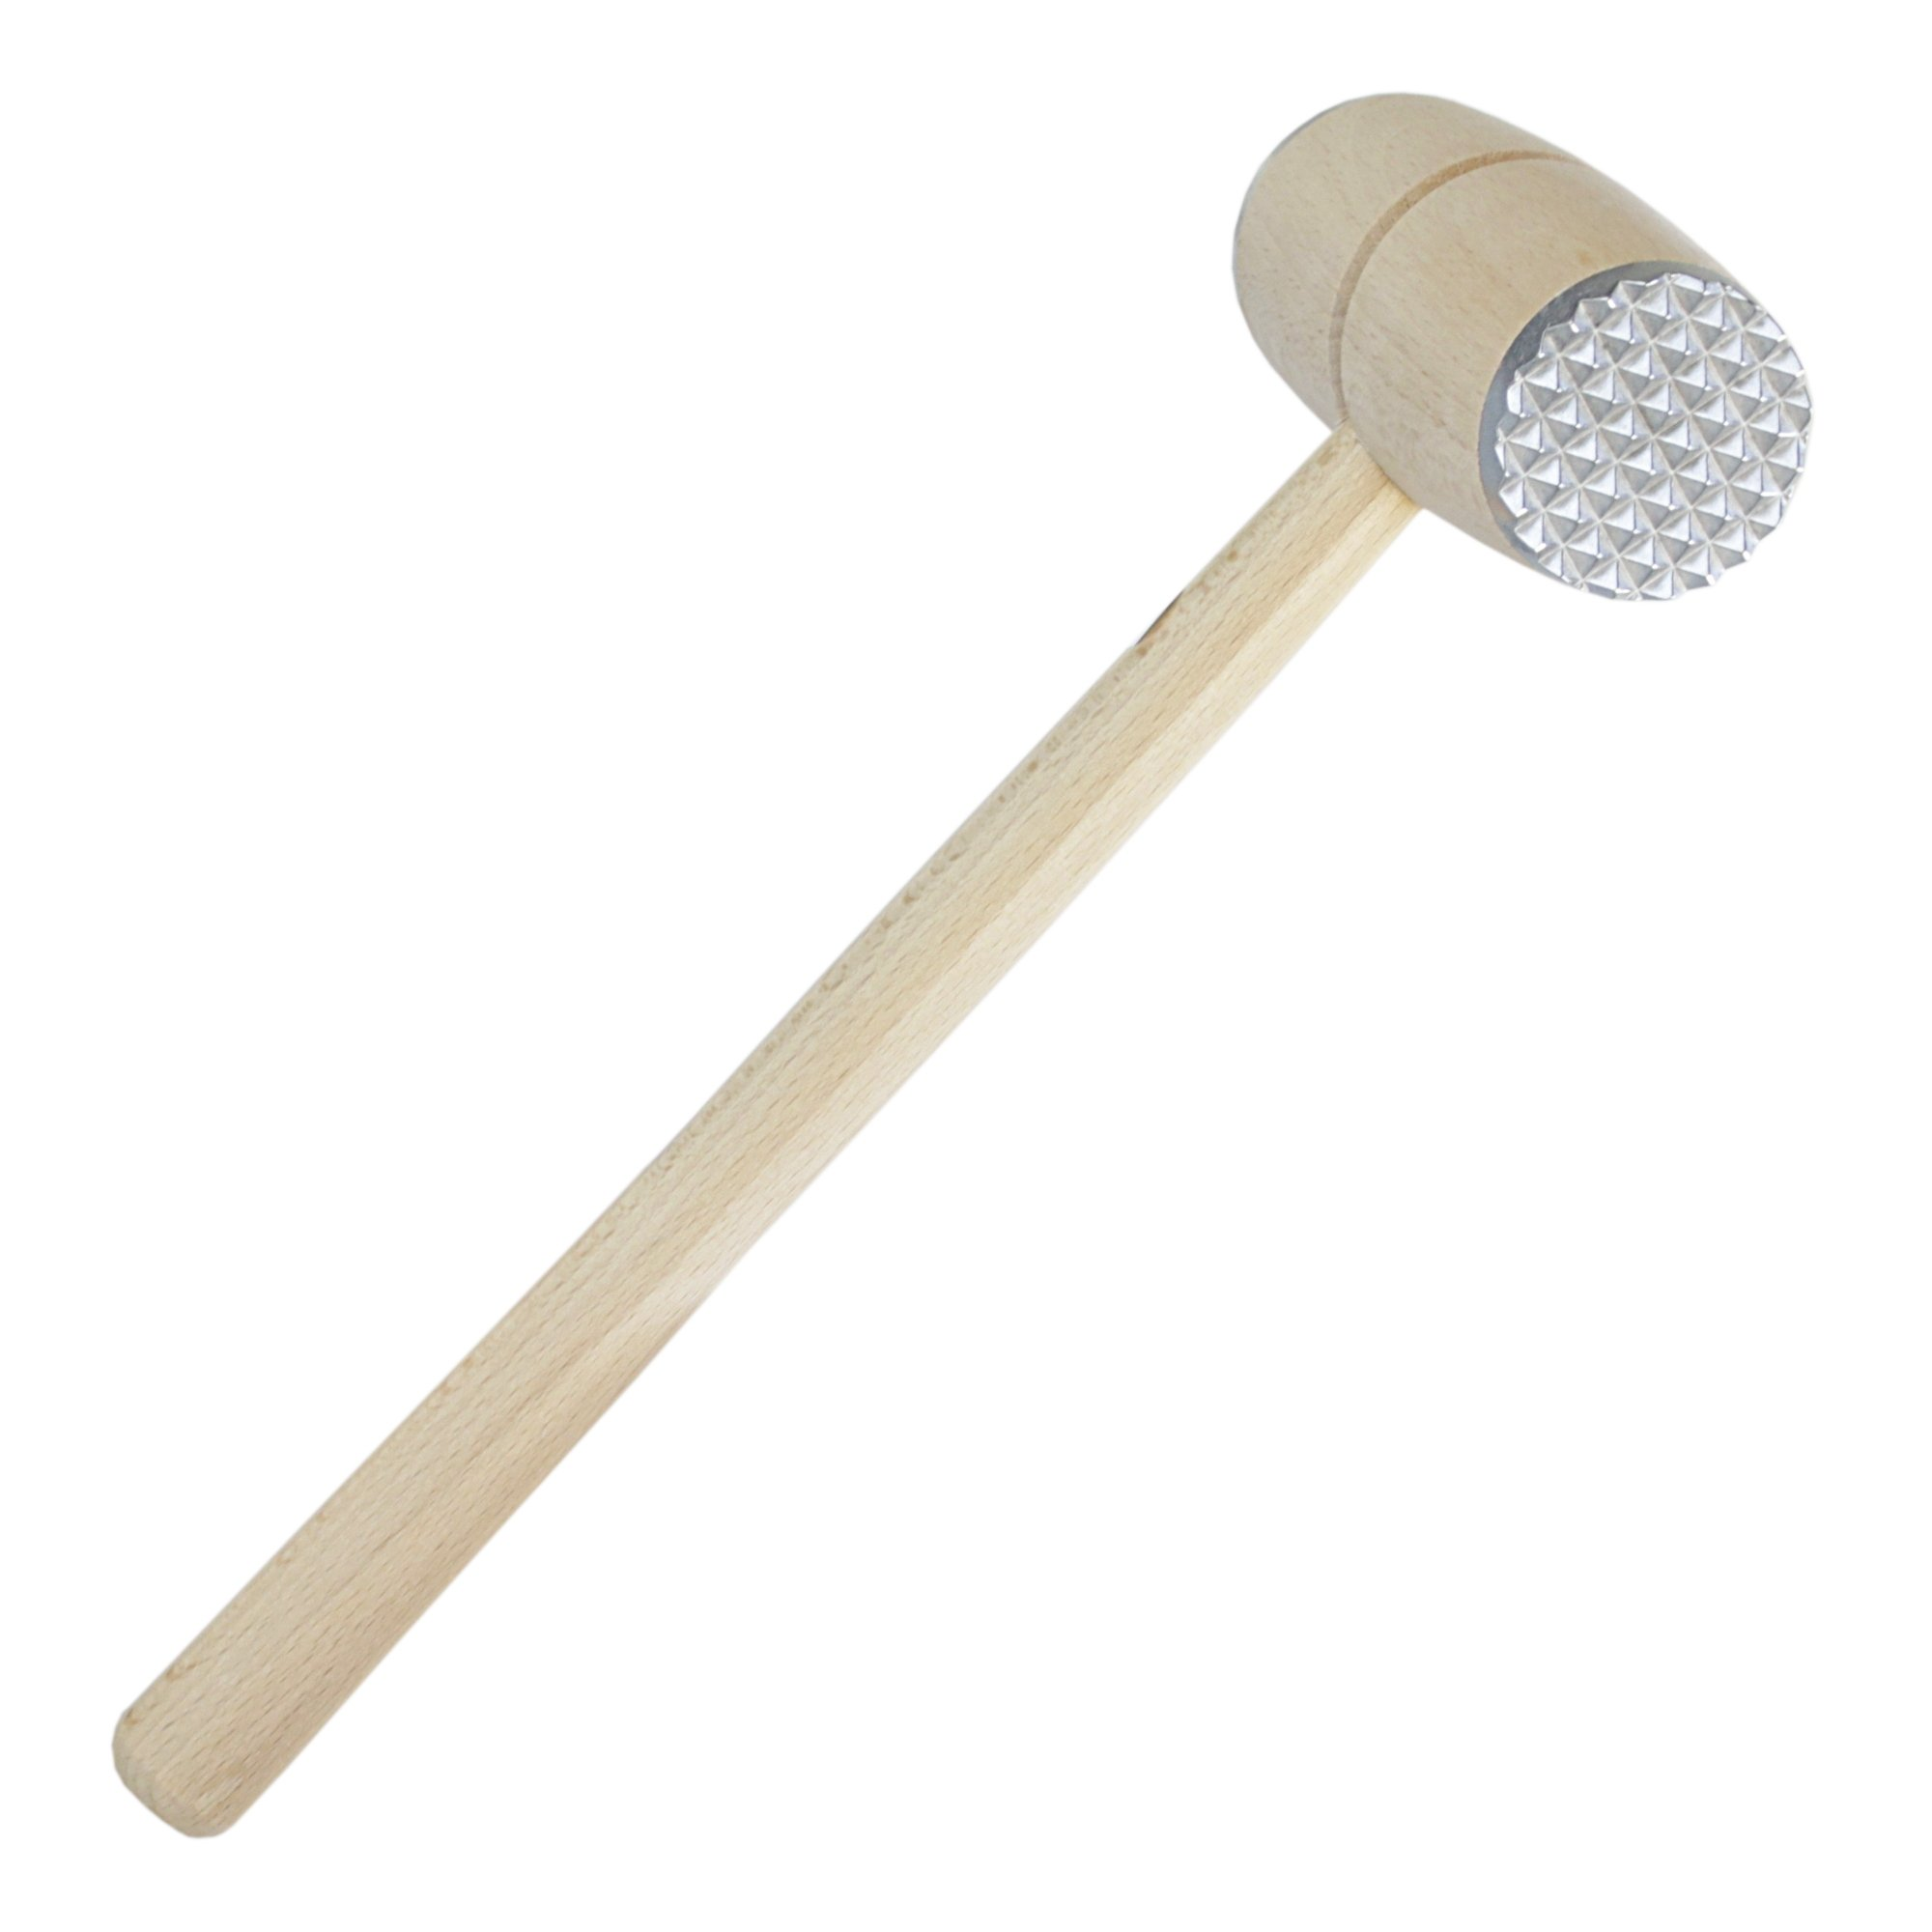 Scandicrafts Beech Wood and Aluminum 12 Inch Meat Tenderizer